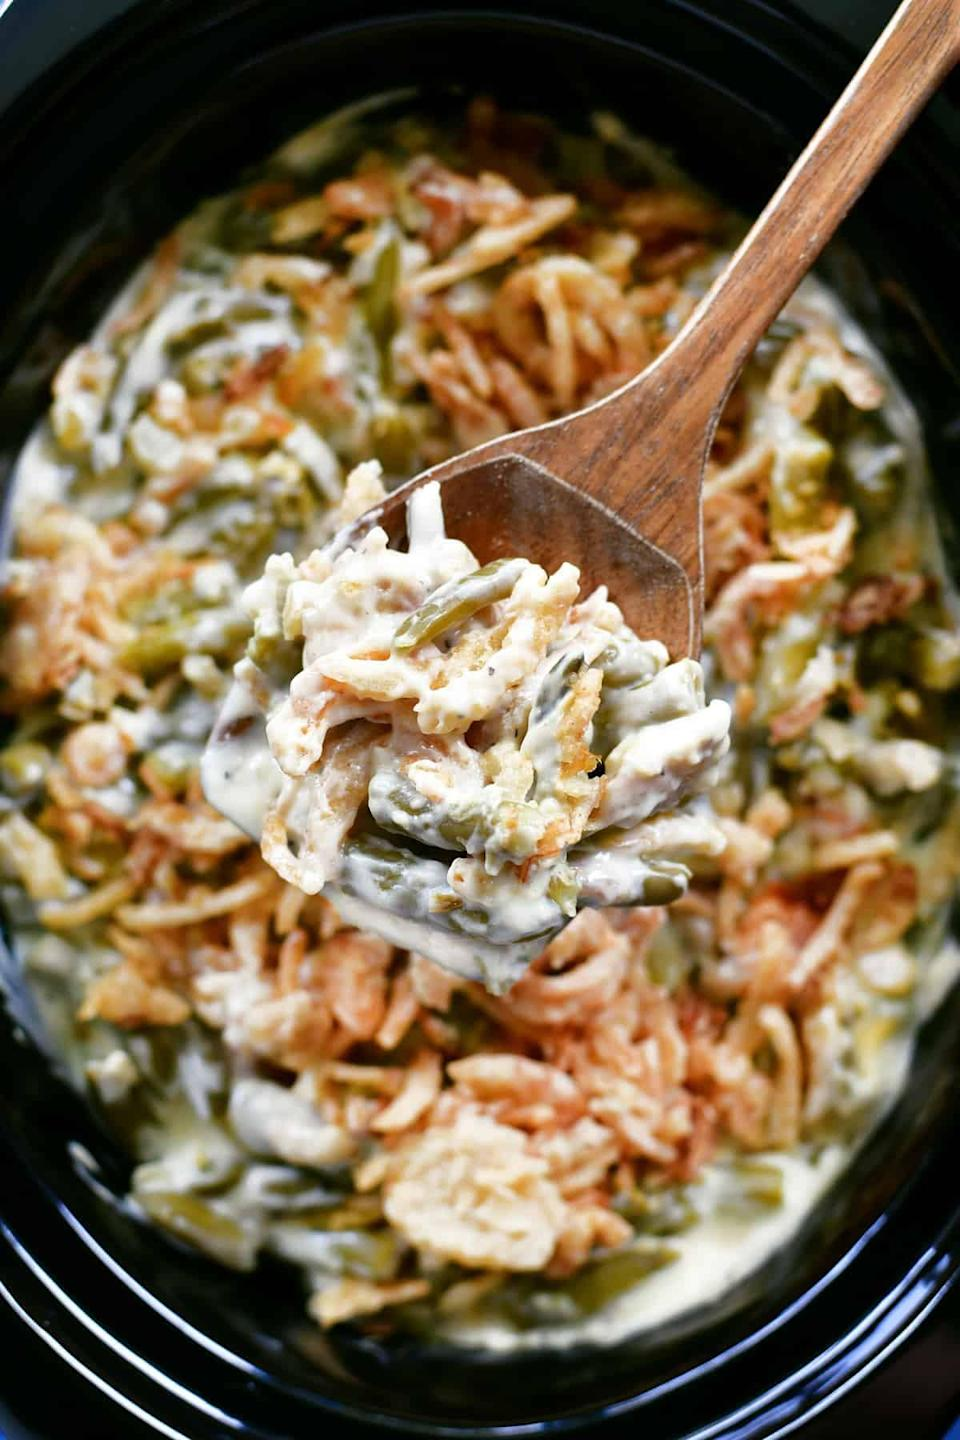 """<p>The slow cooker is a life-saver for any holiday meal.</p> <p><b>Get the recipe:</b> <a href=""""https://www.thegunnysack.com/slow-cooker-green-bean-casserole/"""" class=""""link rapid-noclick-resp"""" rel=""""nofollow noopener"""" target=""""_blank"""" data-ylk=""""slk:slow-cooker green bean casserole"""">slow-cooker green bean casserole</a></p>"""